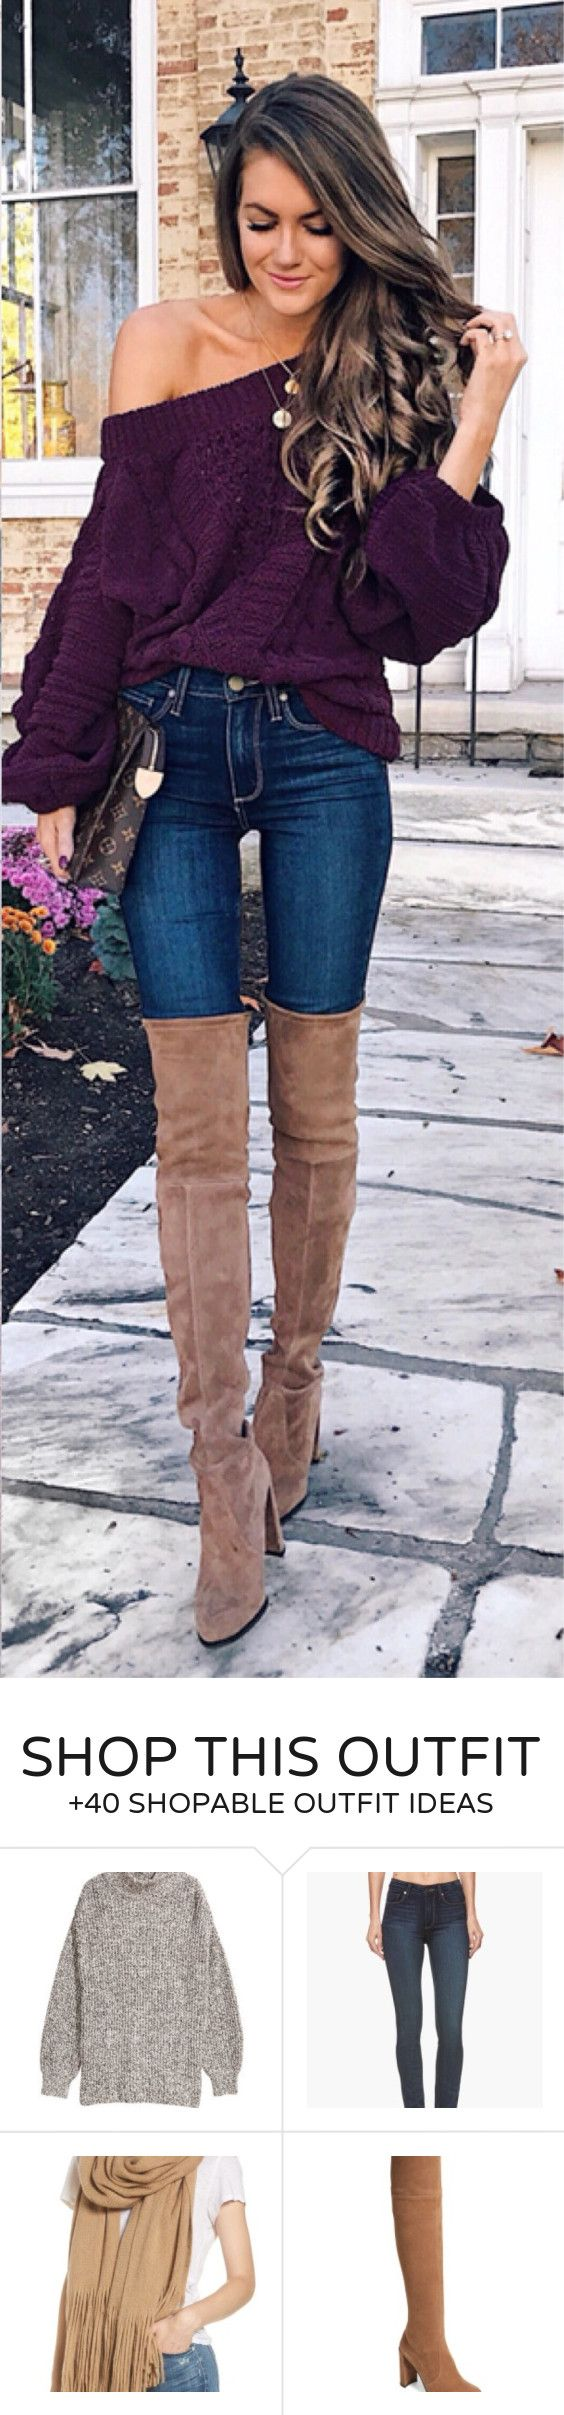 #fall #outfits women's purple knitted boat-neck jacket and blue jeans with pair of brown suede wide-calf boots outfit